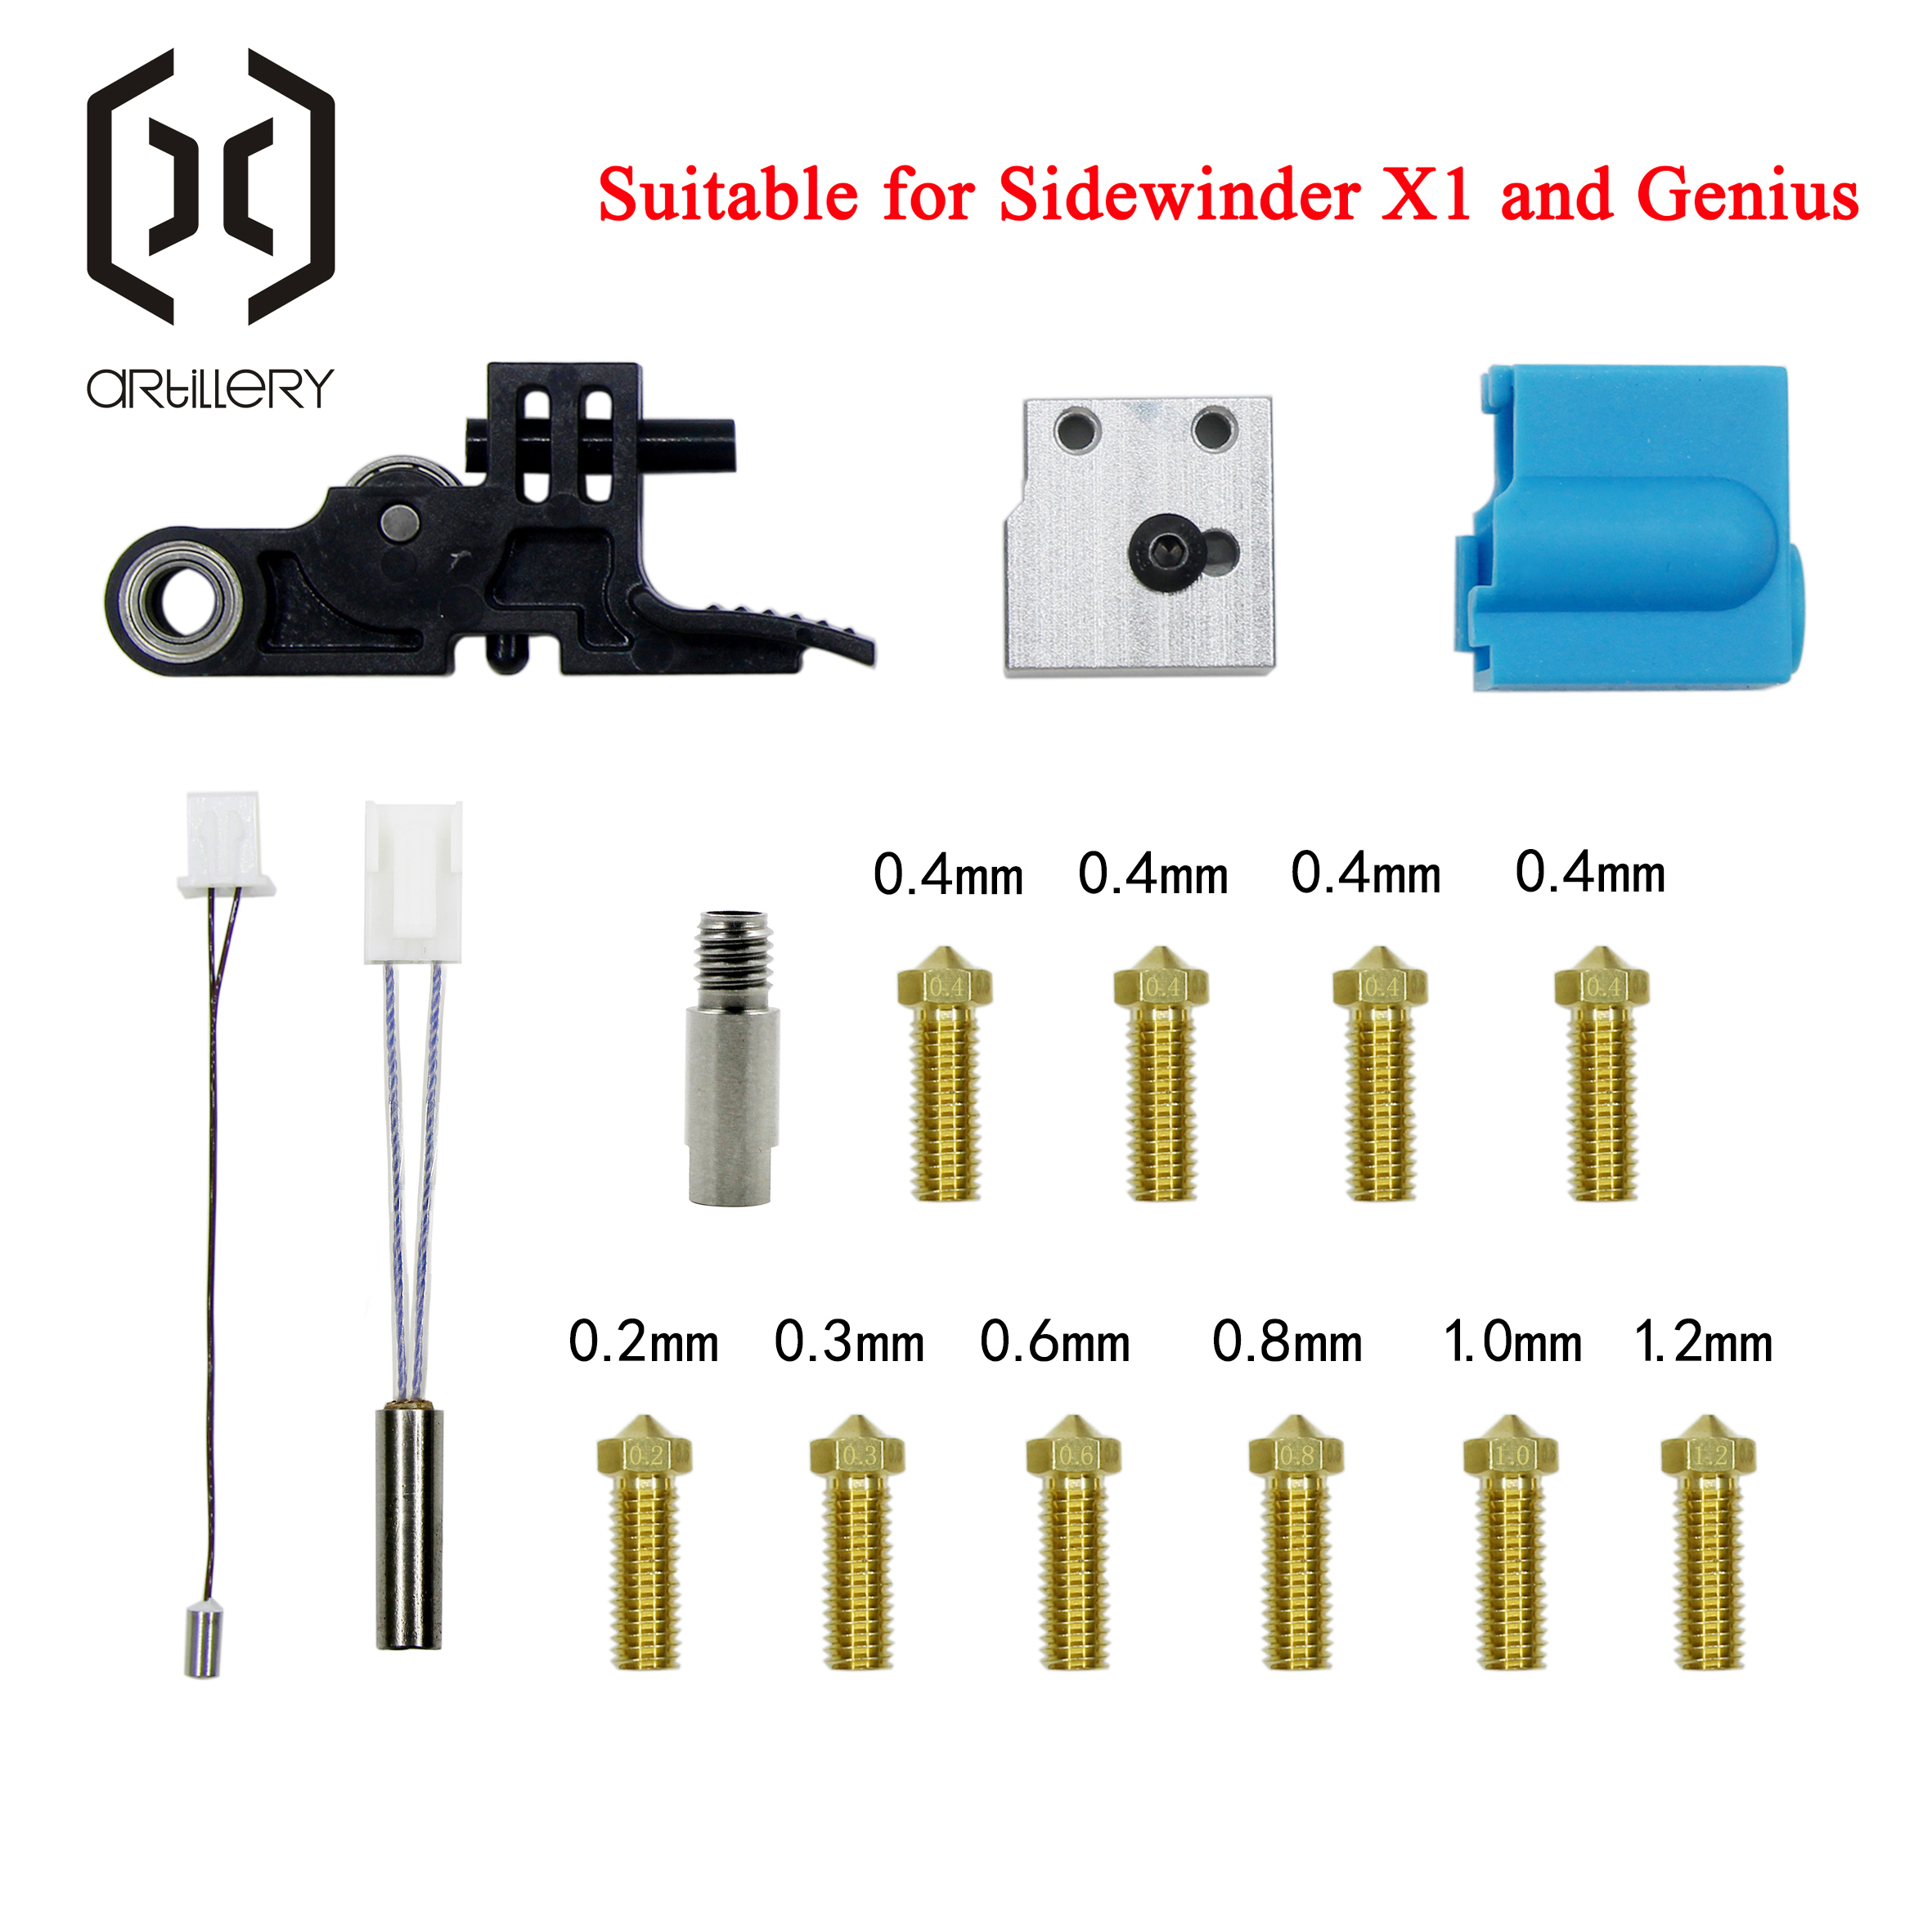 Artillery 3D Printer Sidewinder X1 AND Genius Nozzle Silicone Sleeve Throat Handle Thermistor Heating pipe Heating Block Kit